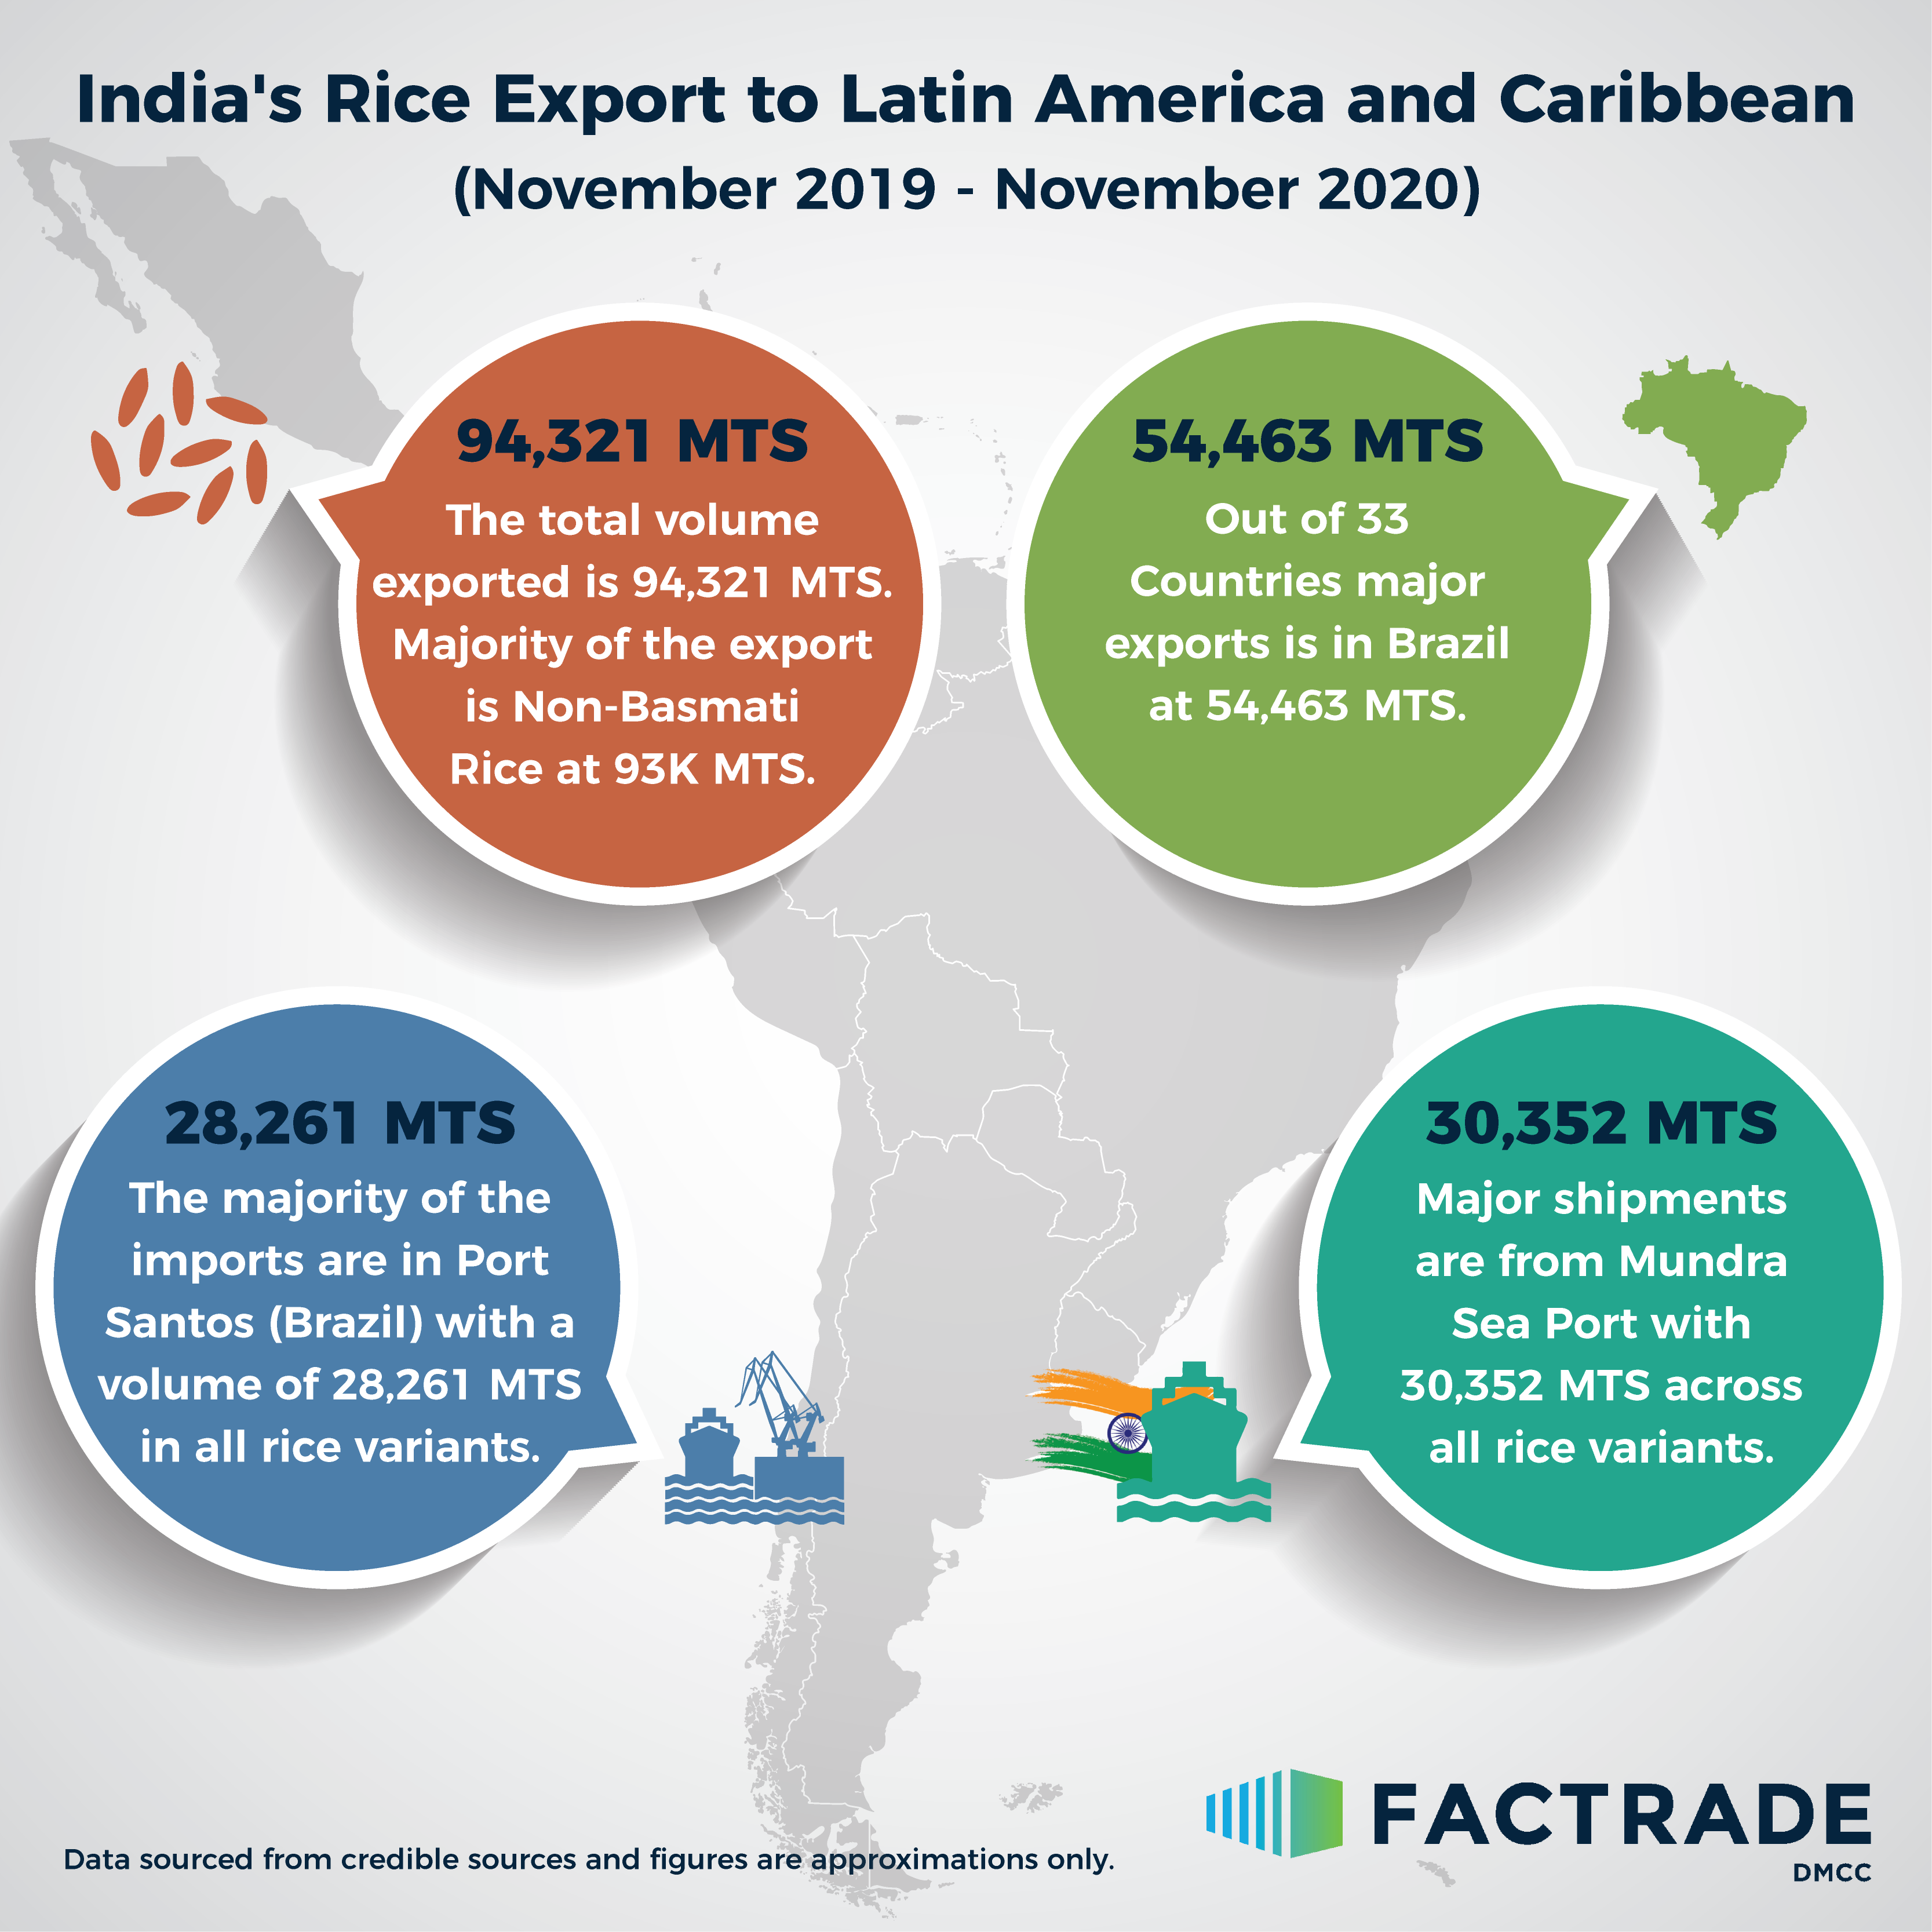 India's Rice Export to Latin America and Caribbean